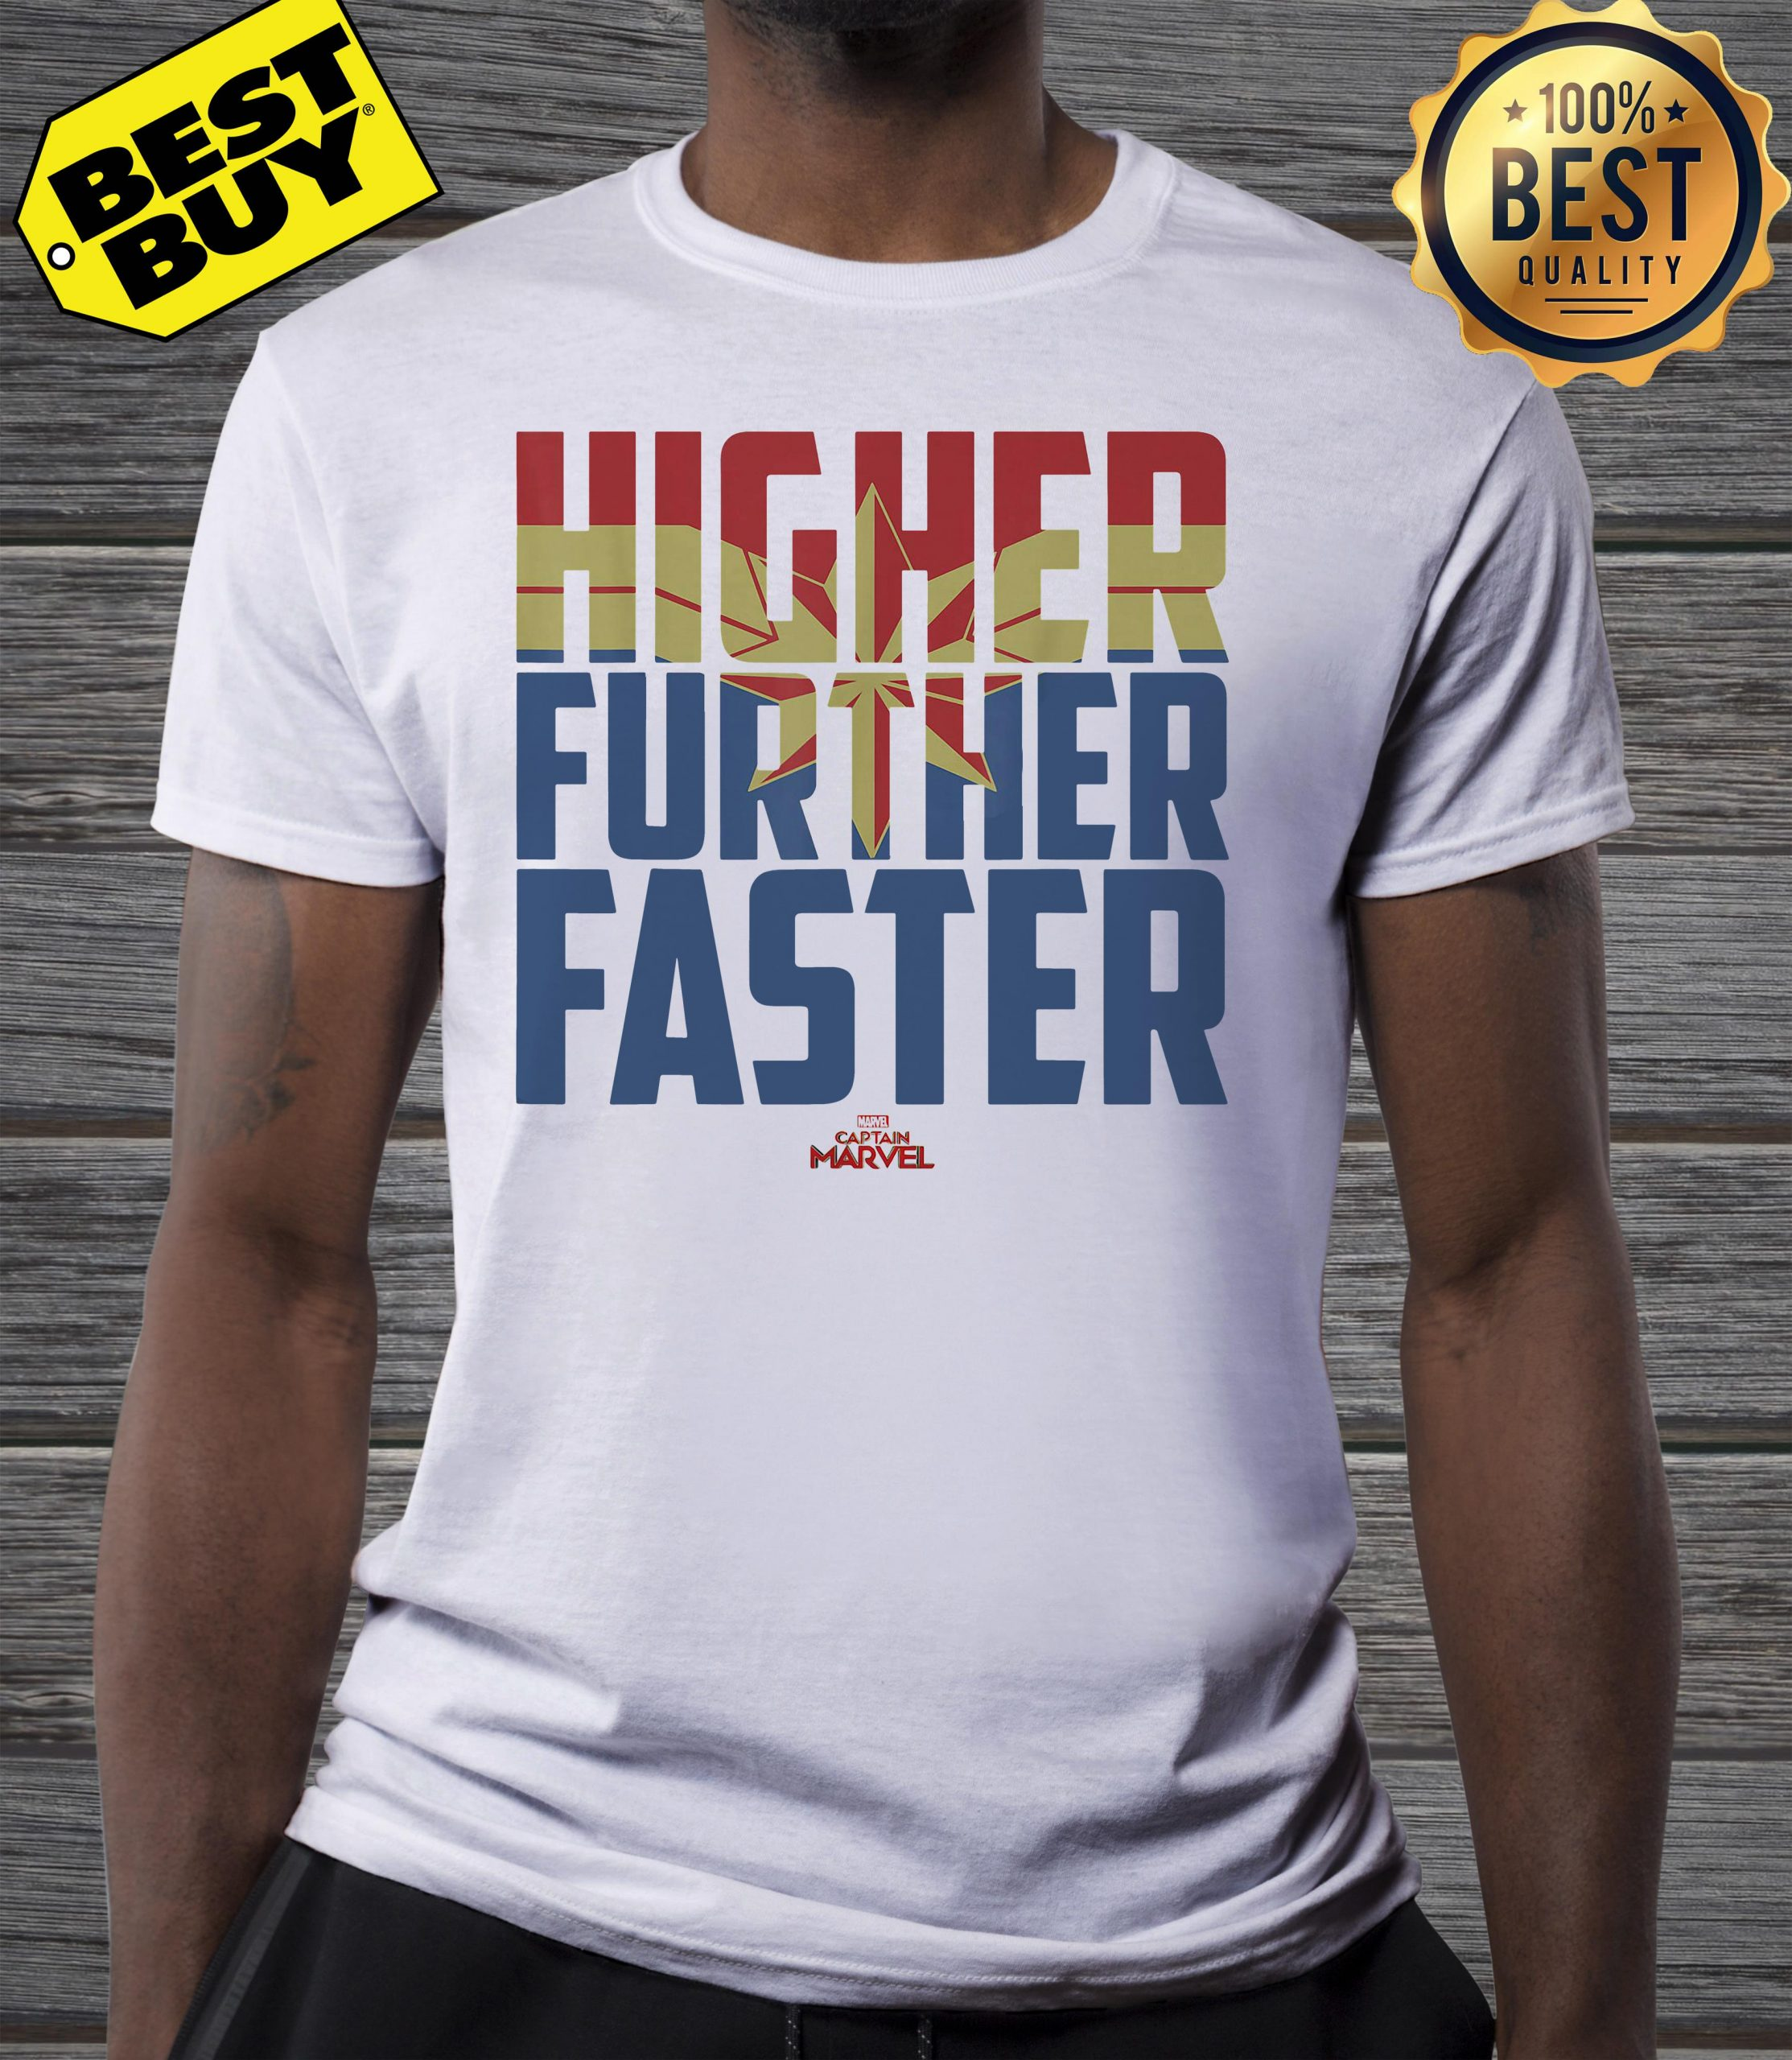 Captain Marvel Movie Higher Further Faster Graphic v-neck